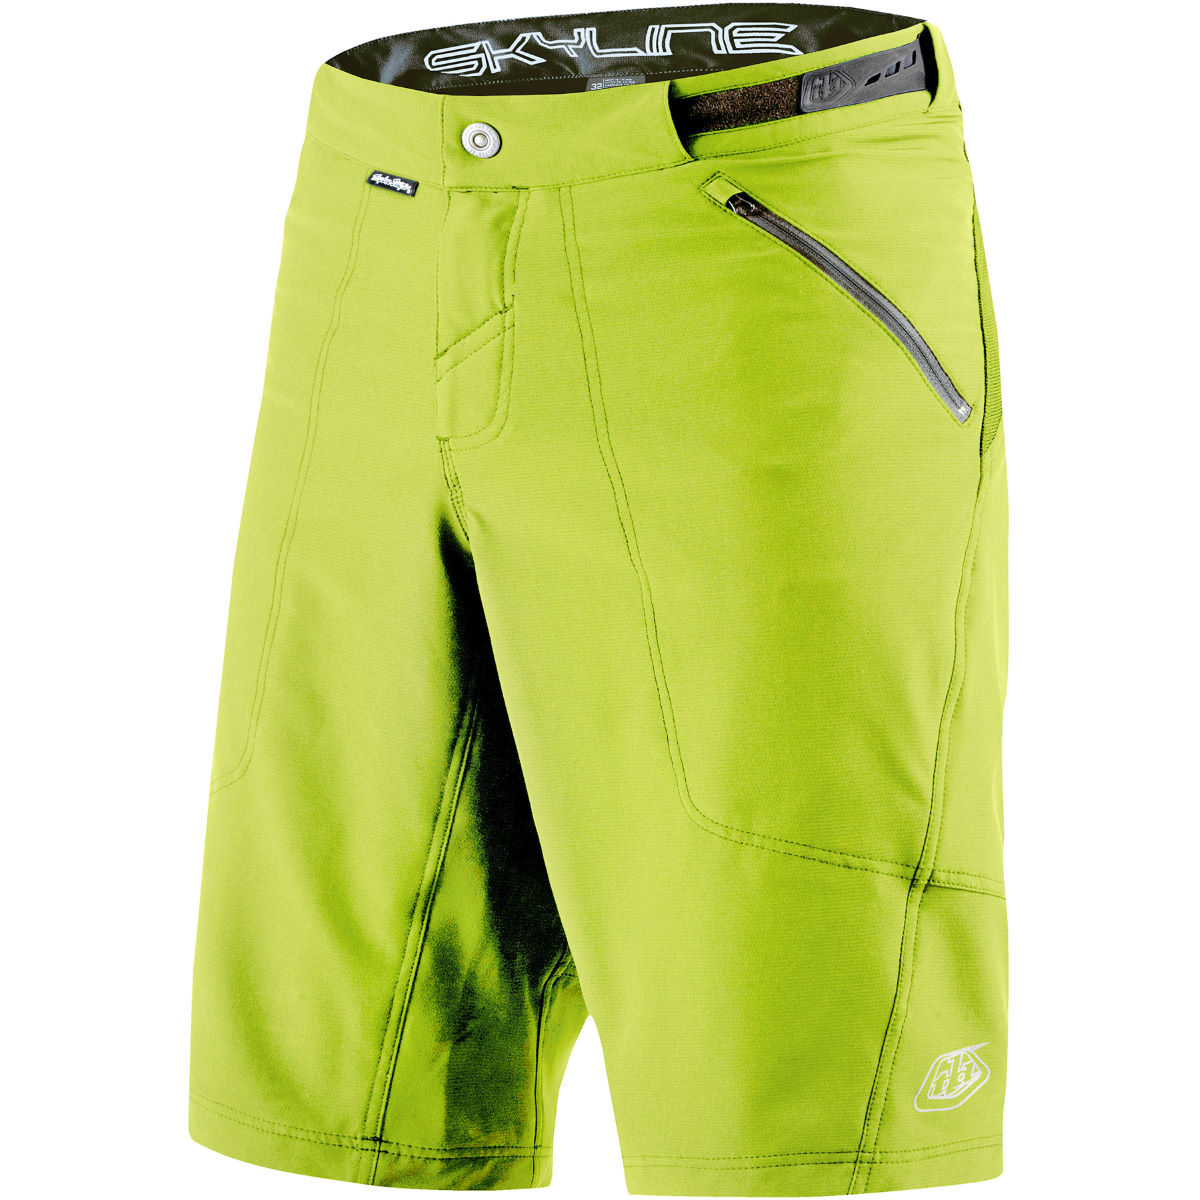 Short Troy Lee Designs Skyline Shell - XL Jaune Shorts amples